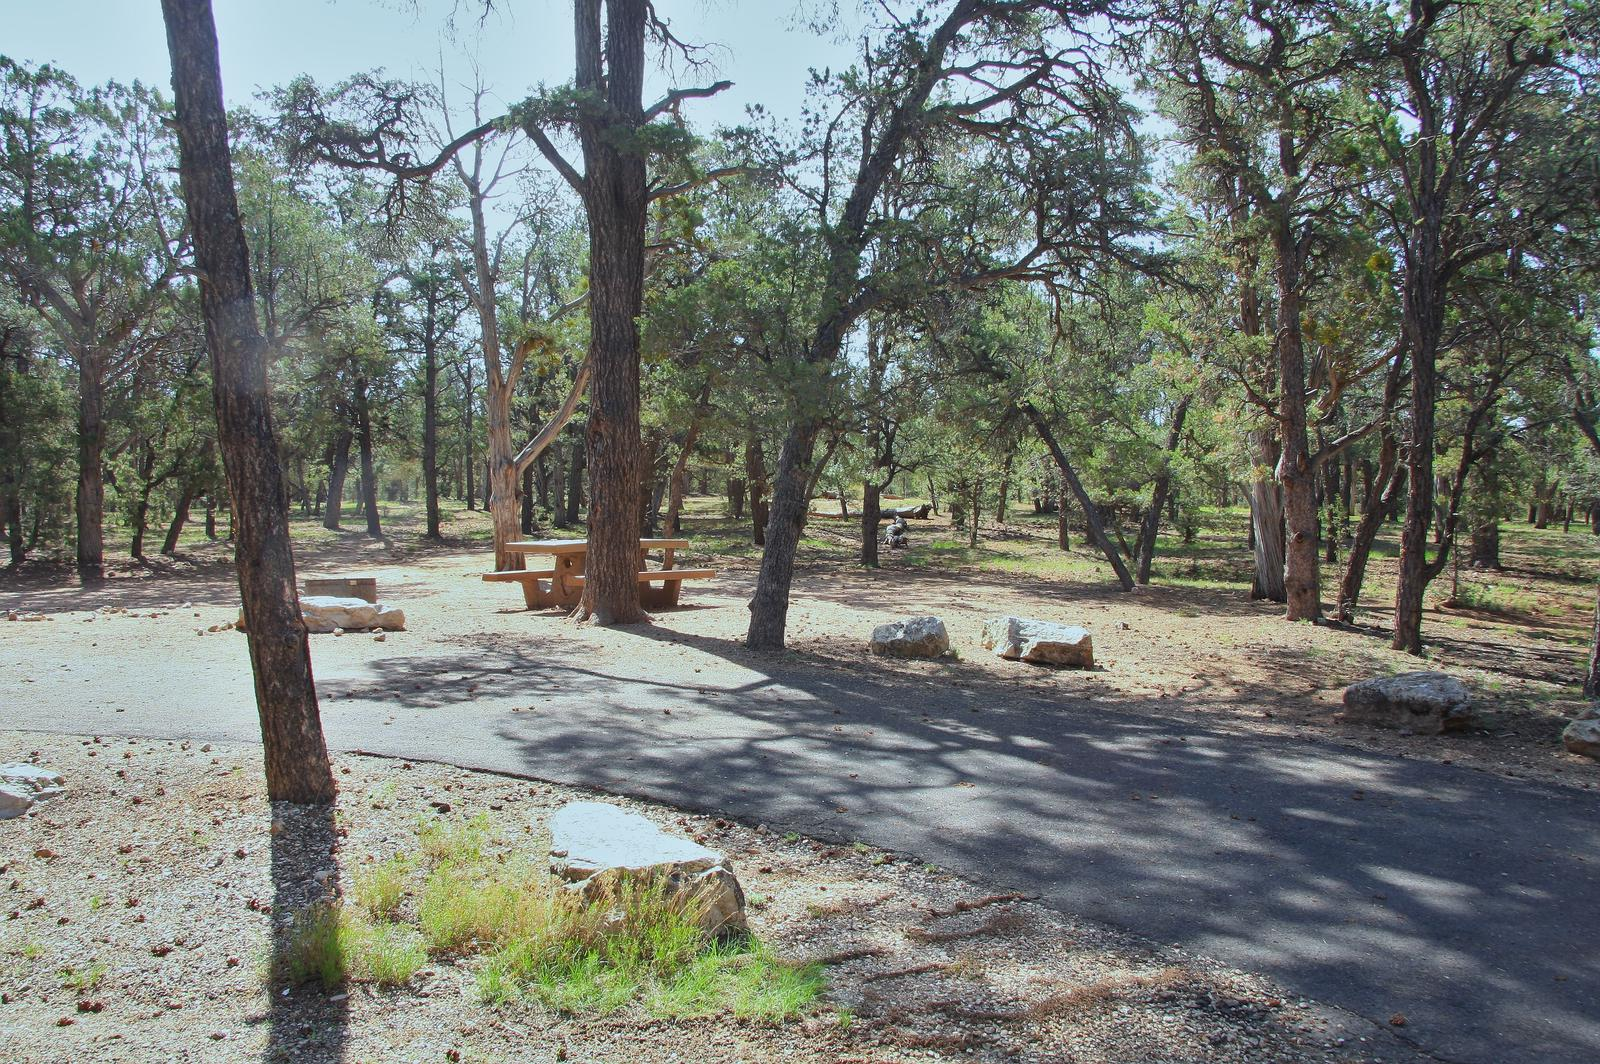 Picnic table, fire pit, and park spot, Mather CampgroundPicnic table, fire pit, and park spot for Oak Loop 237, Mather Campground